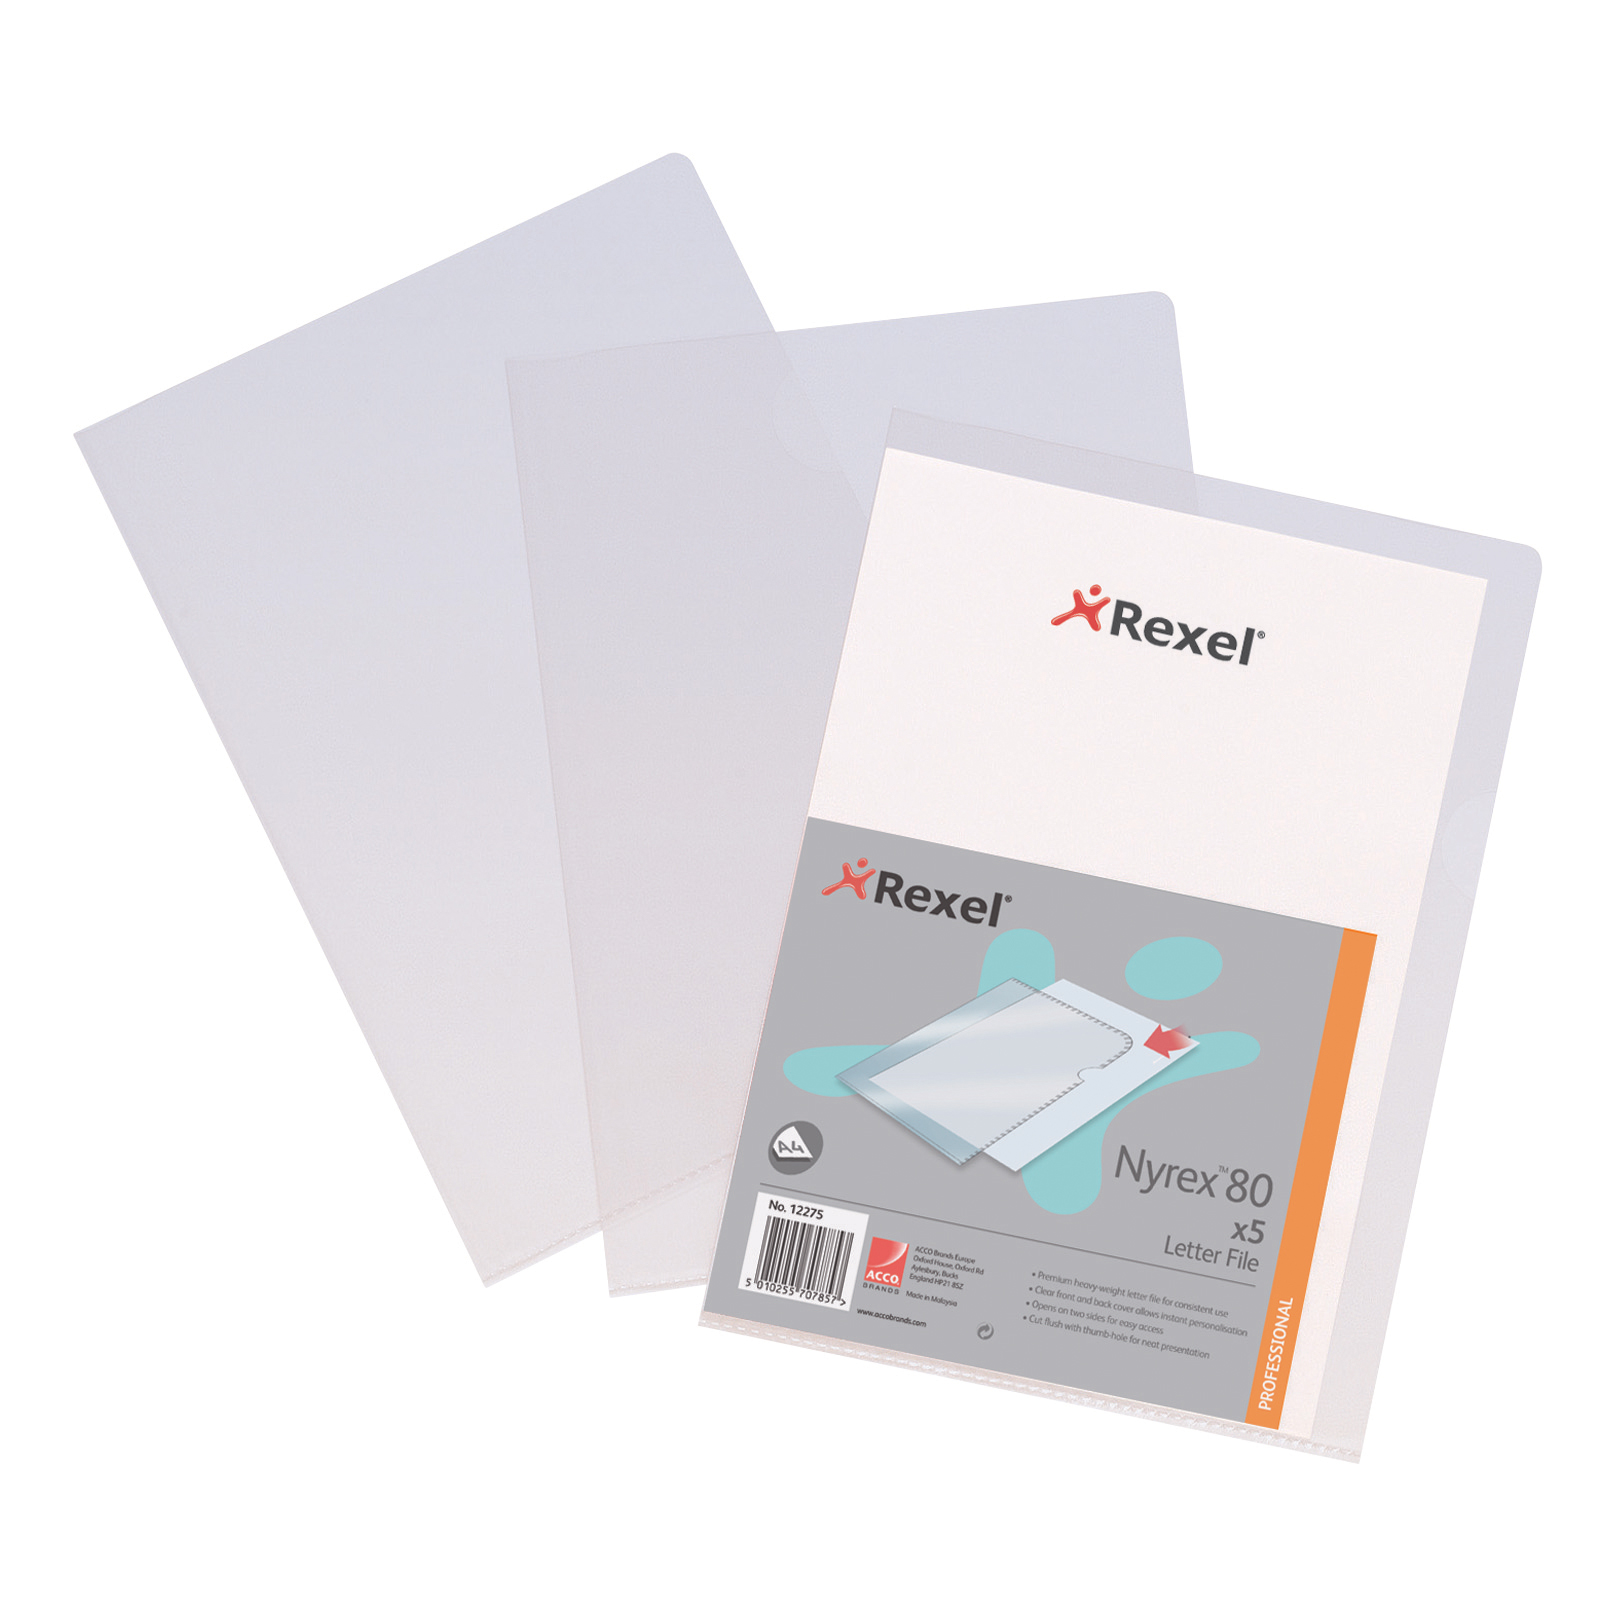 Rexel Nyrex 80 Letter File Folder Cut Flush Embossed 80/LF/A4 A4 Clear Ref 12280 Pack 25